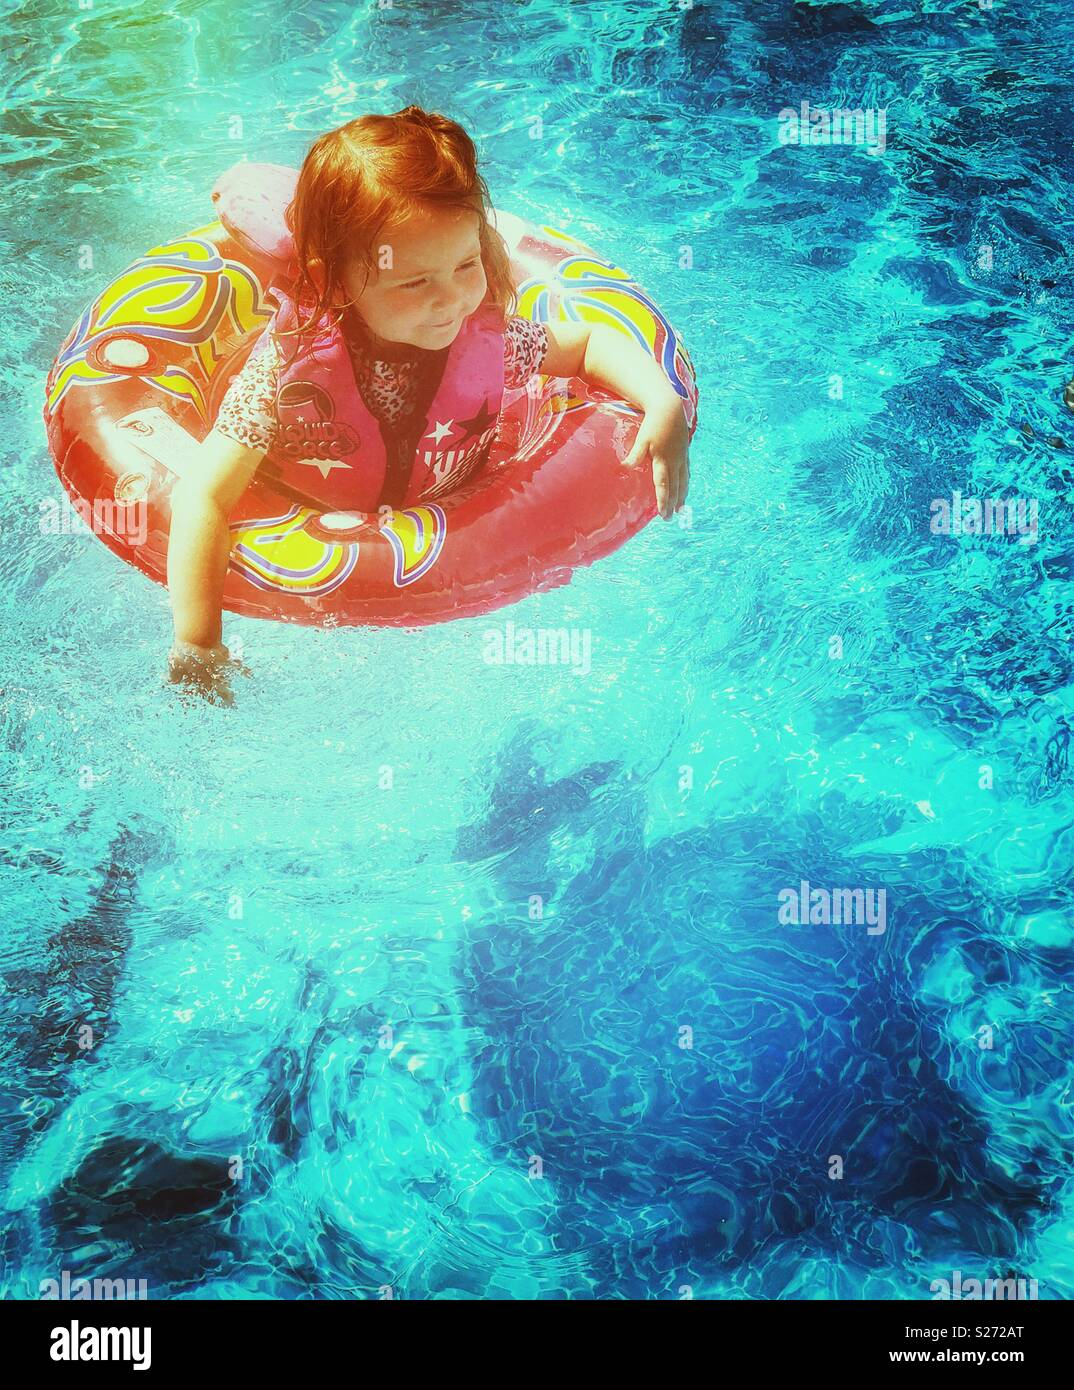 Toddler girl in a swimming pool with life vest and flotation ring on a summer day - Stock Image